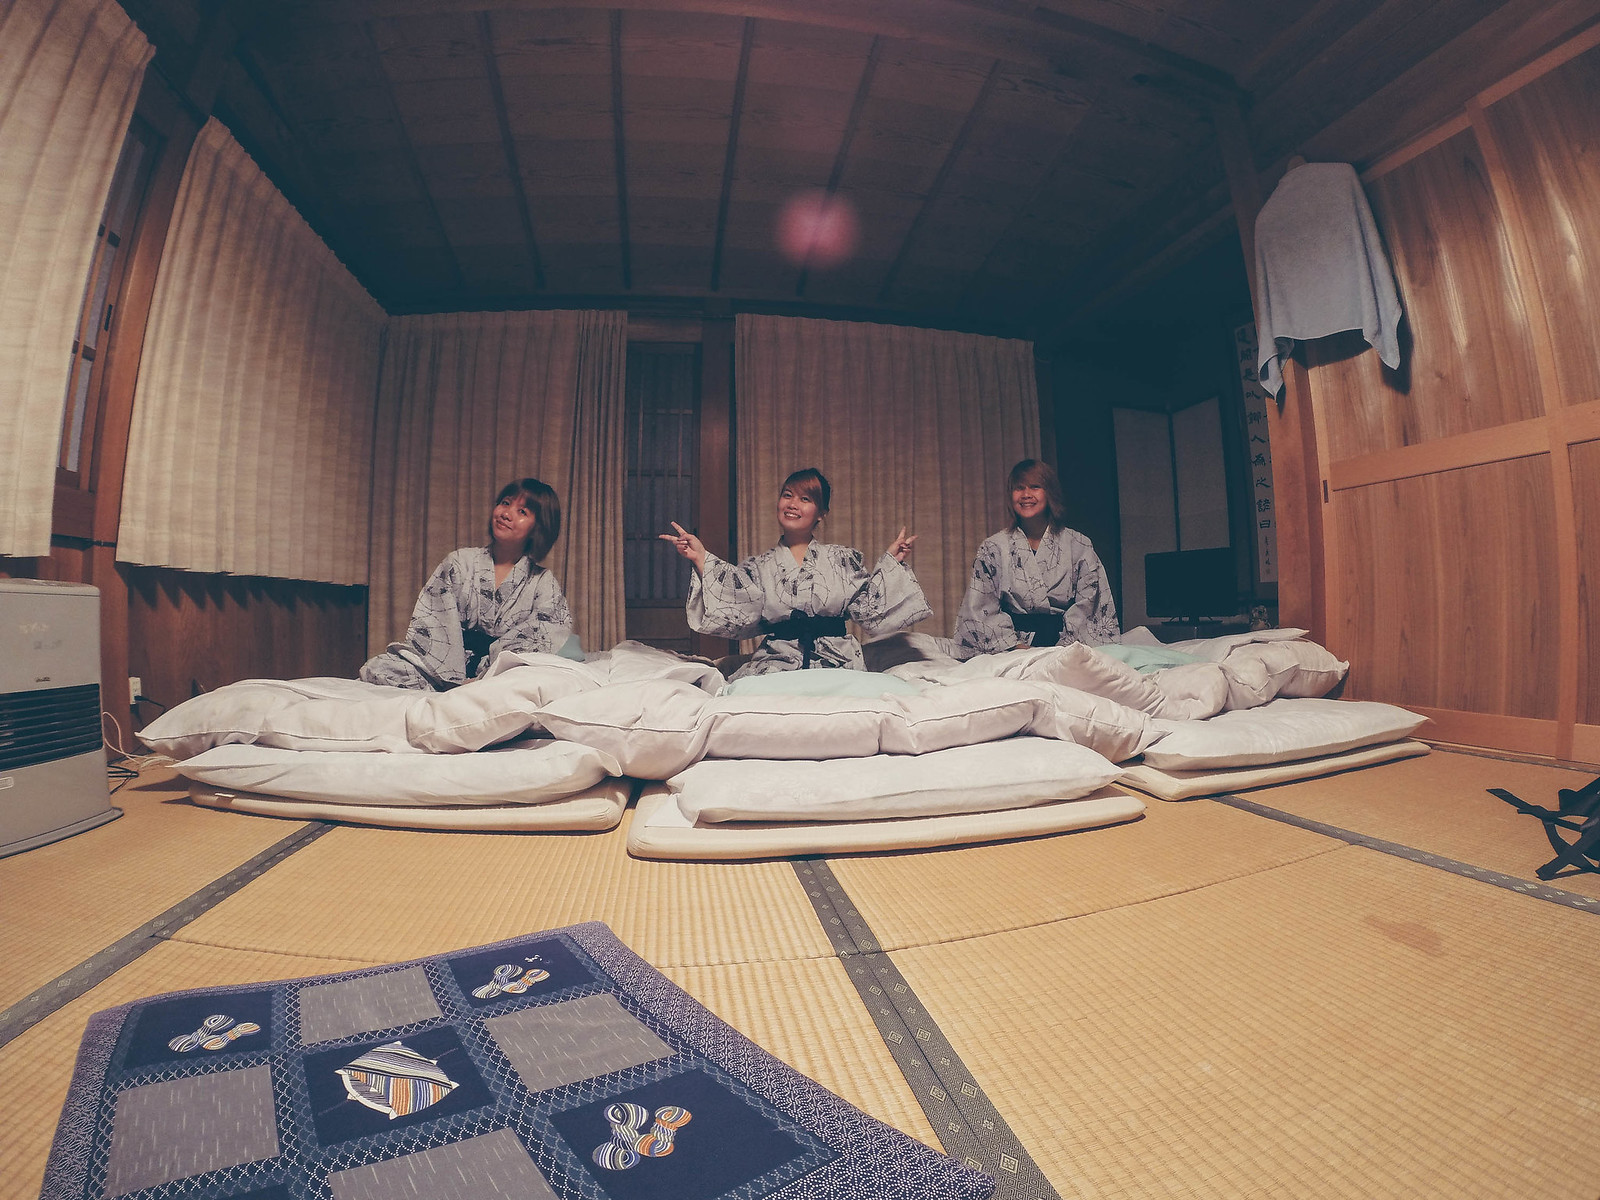 traditional Japanese room at Yokichi in Shirakawa-go